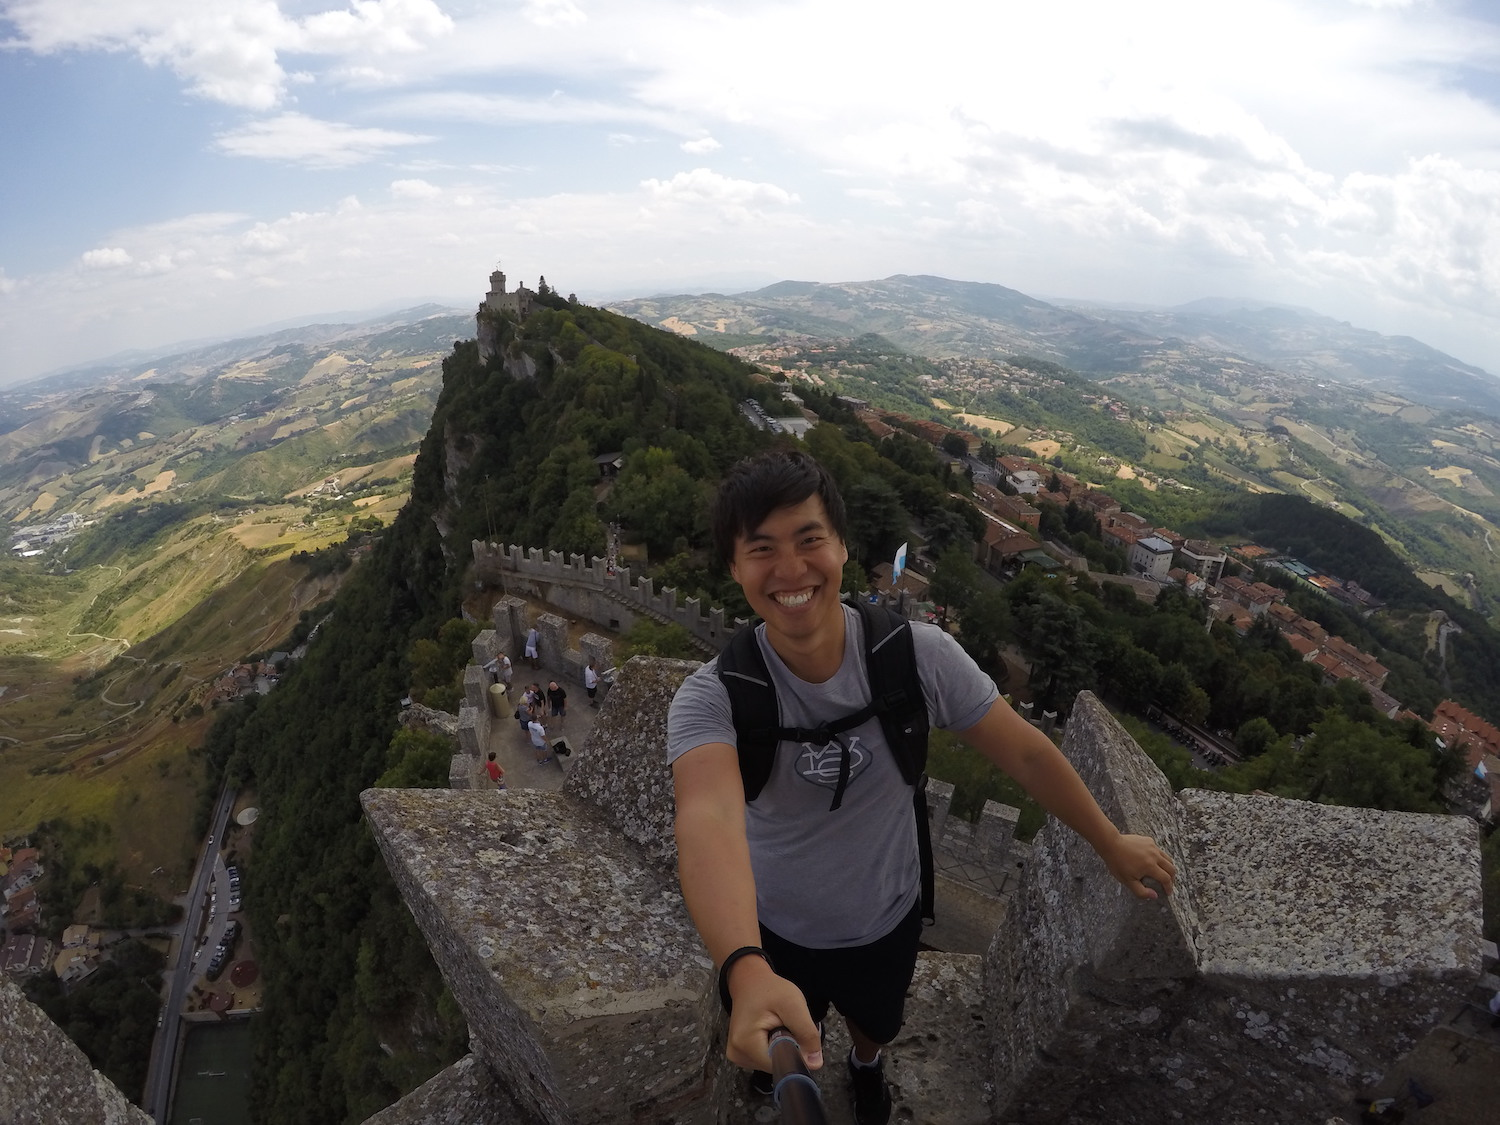 San Marino, San Marino – Country #52 In My Mission to Visit All Countries in the World